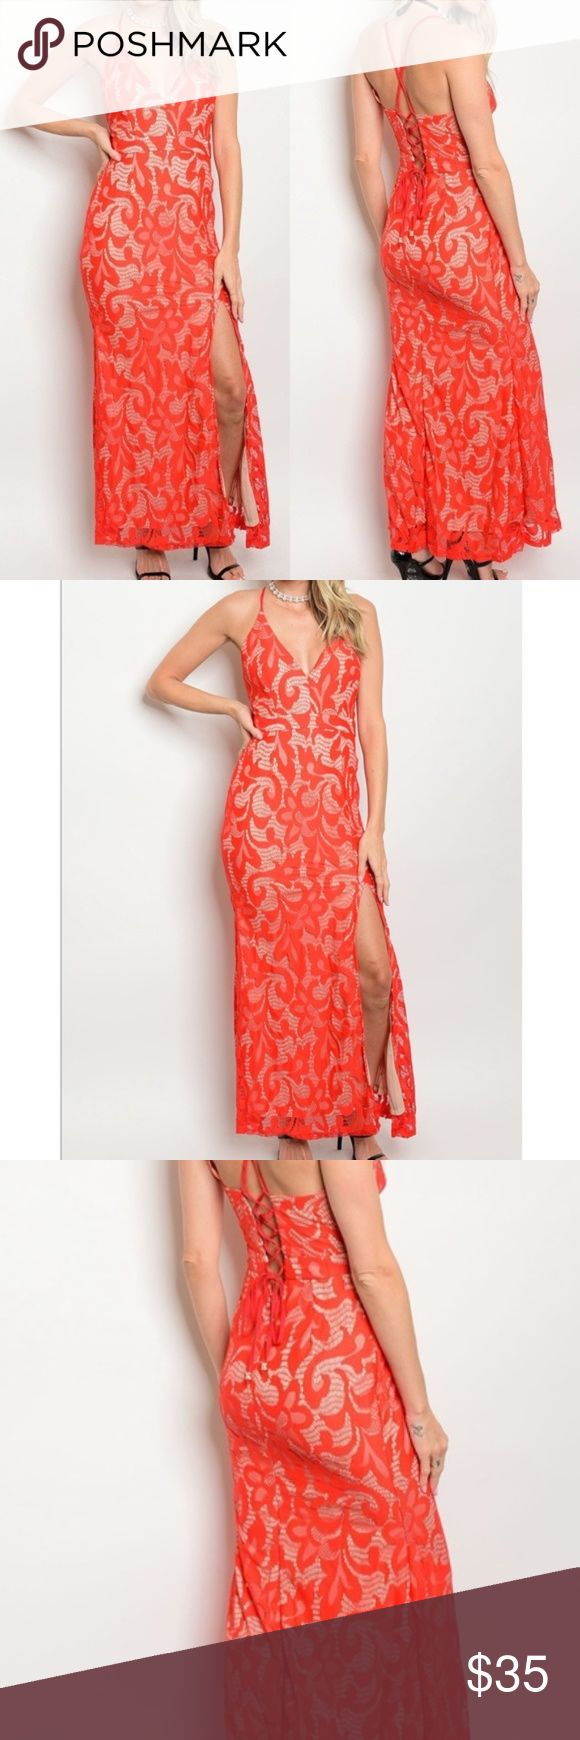 Nude and Coral Lace Plunging Neckline Long Dress Wow! This nude and coral dress features a Plunging Neckline And lac detail. It is fully Lined and fits true to size with a hidden back zipper and adjustable straps. Beautiful corset lace up backing adds it's elegance along with a front side slit that goes up to mid thigh. It is 100%polyester. Satisfaction guaranteed. Any questions please ask at anytime :-) Dresses